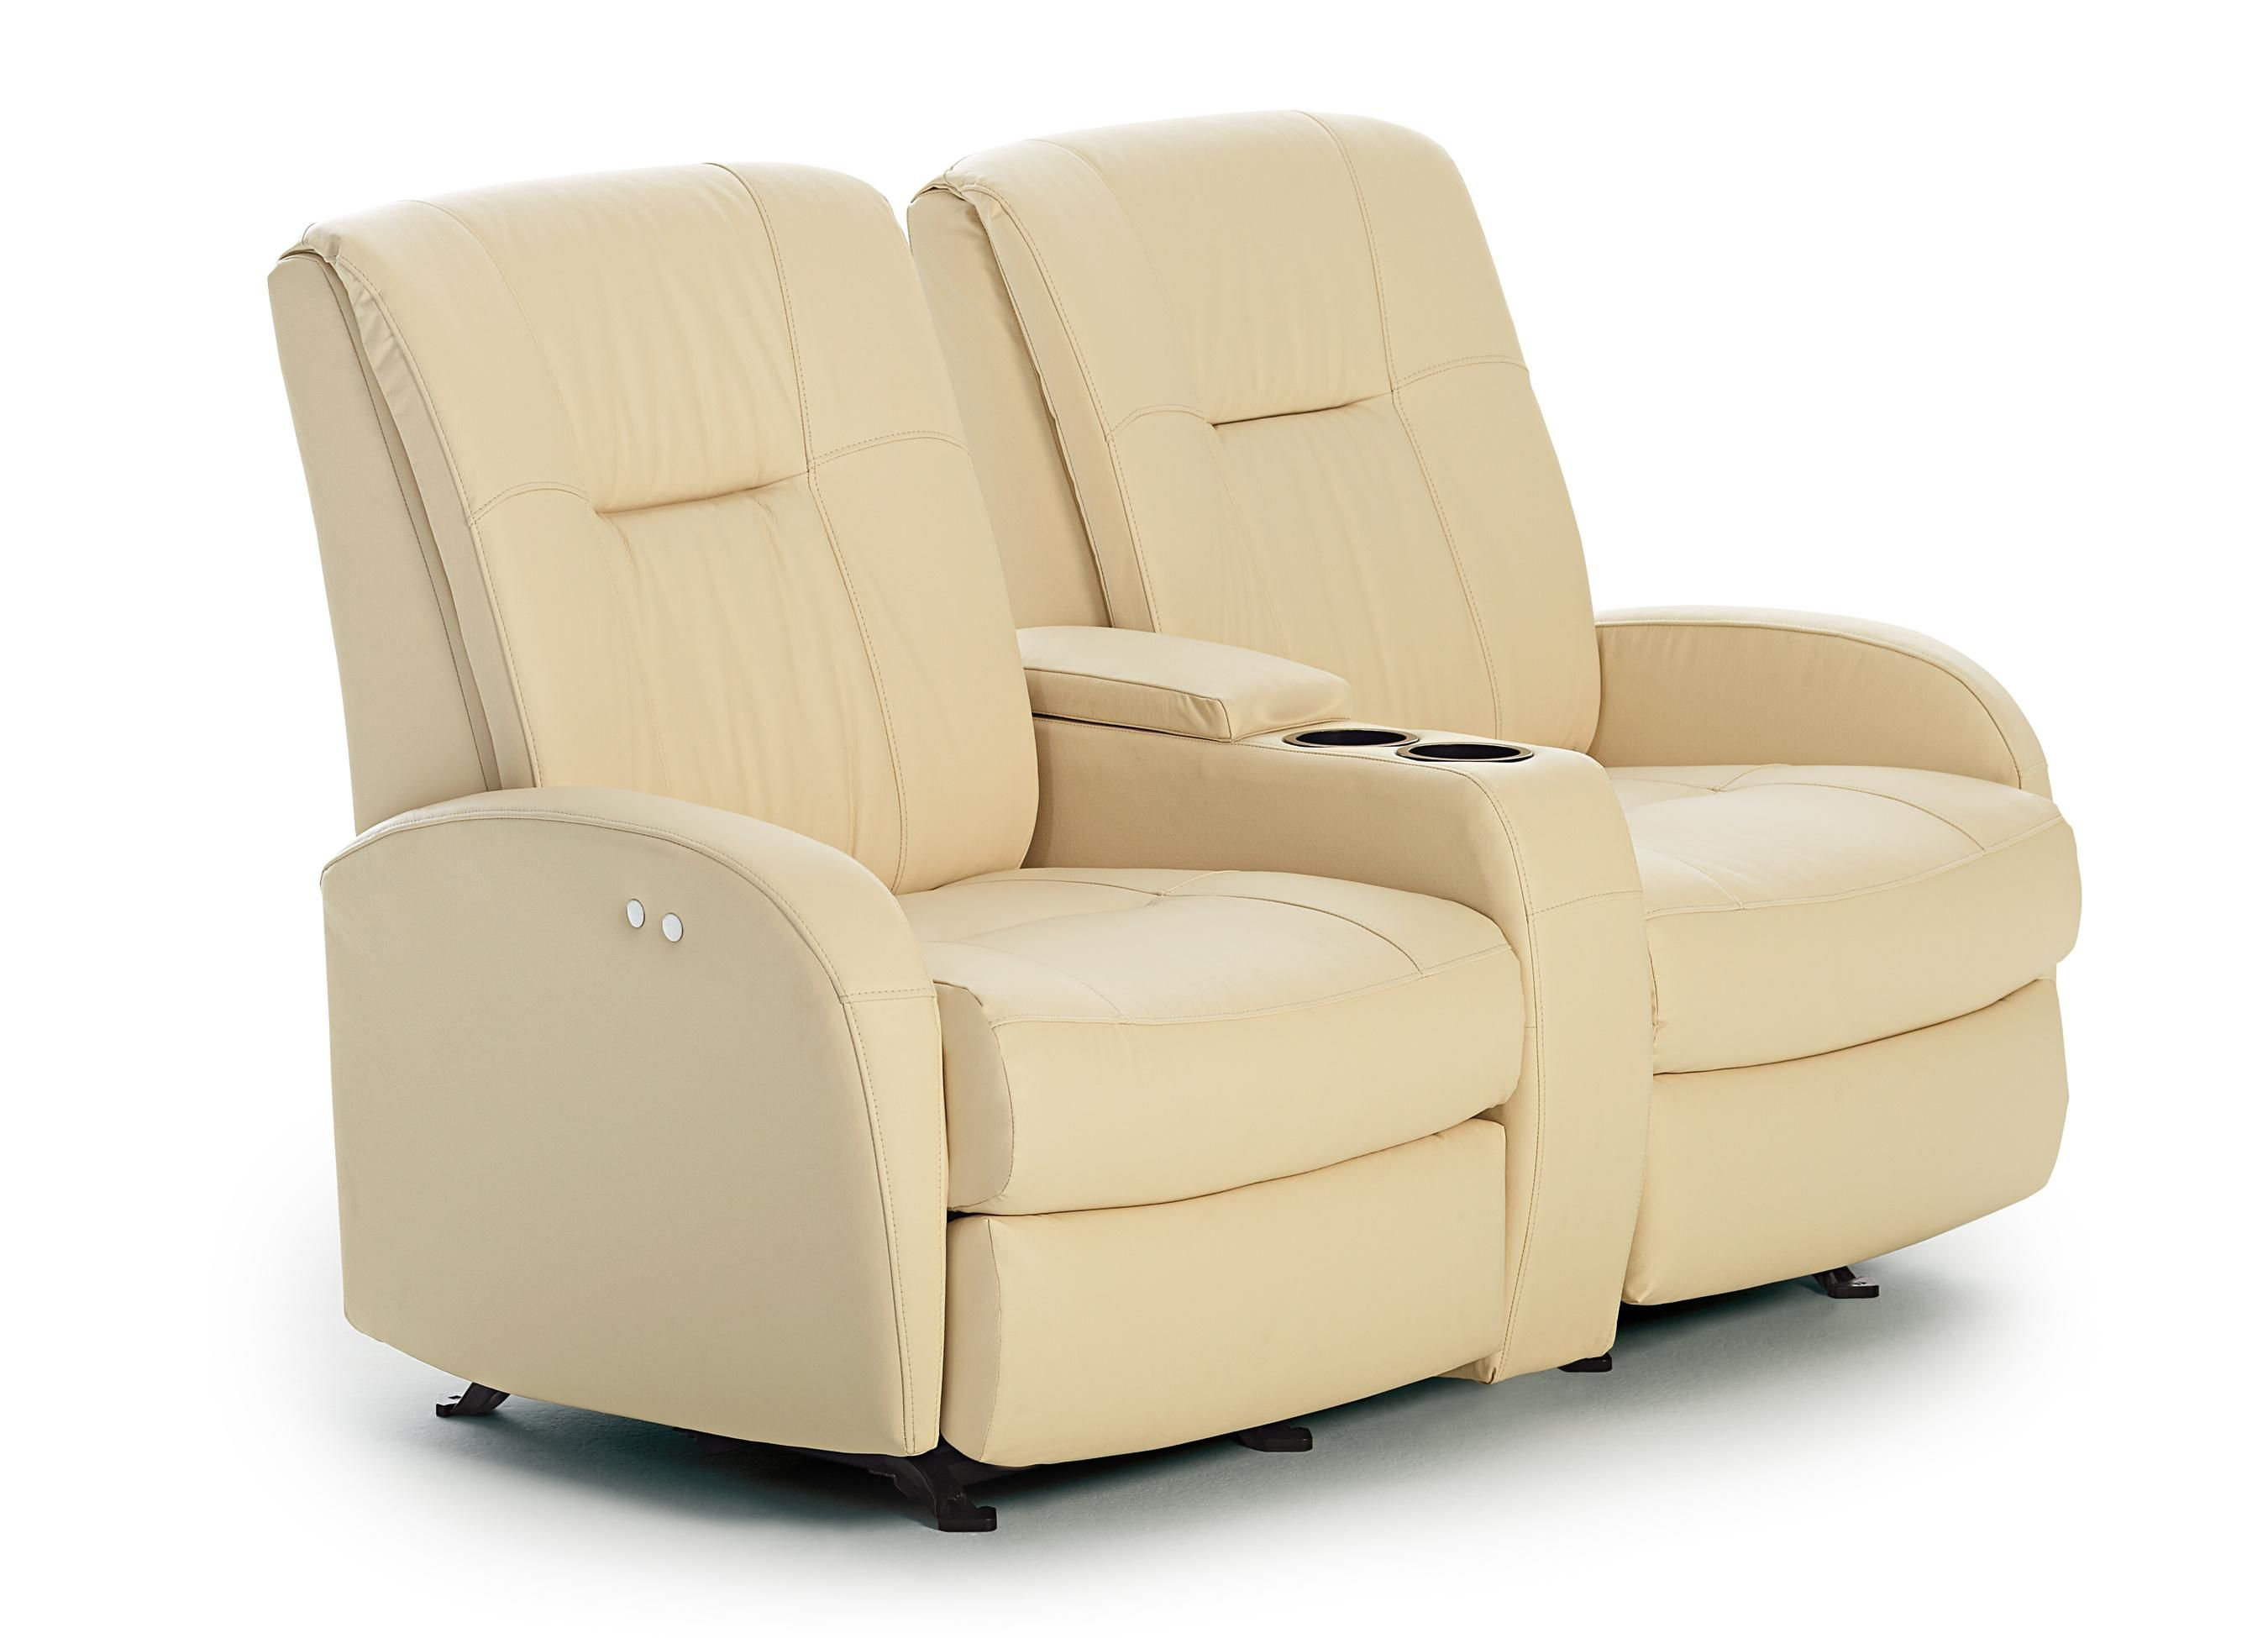 Remarkable Reclining Loveseat With Console Ruddick Contemporary Space Saver Power Reclining Loveseat With Console  sc 1 st  Pinterest : power reclining loveseats - islam-shia.org